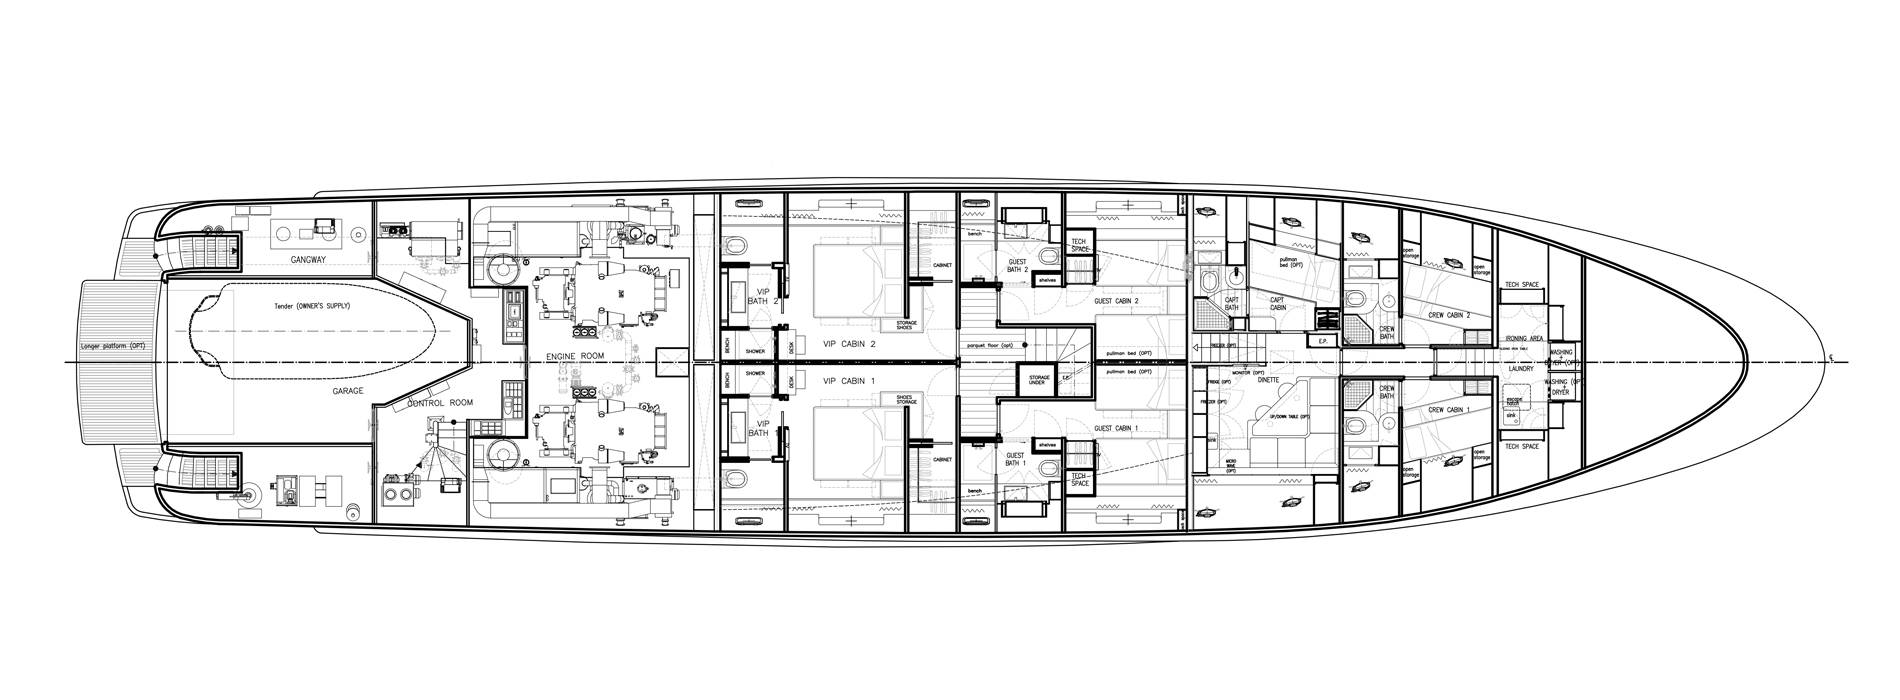 Sanlorenzo Yachts SD122-27 under offer Lower Deck